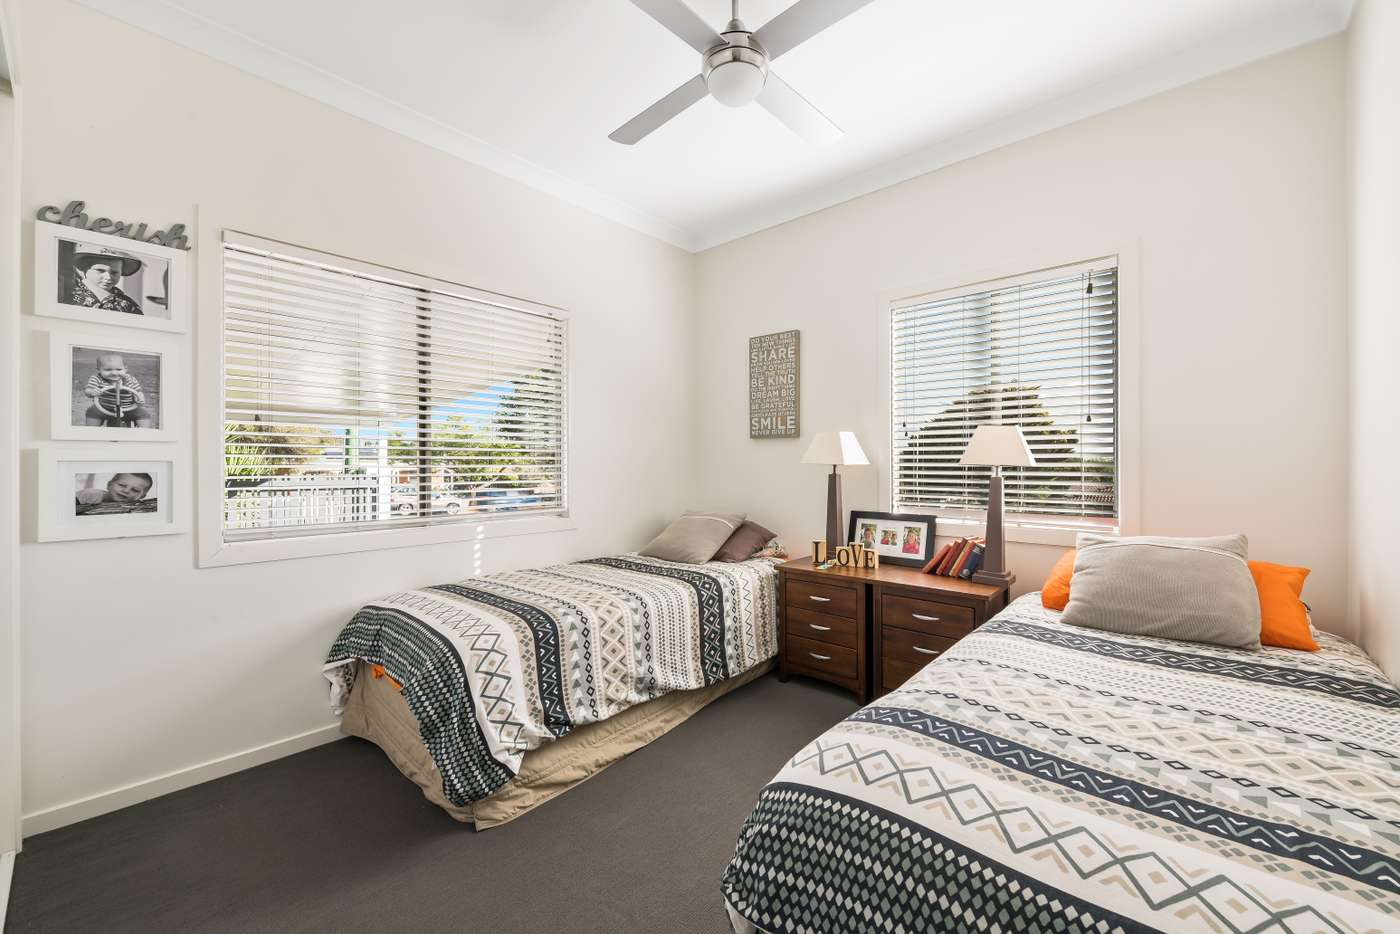 Sixth view of Homely house listing, 23 Gipps Street, Drayton QLD 4350